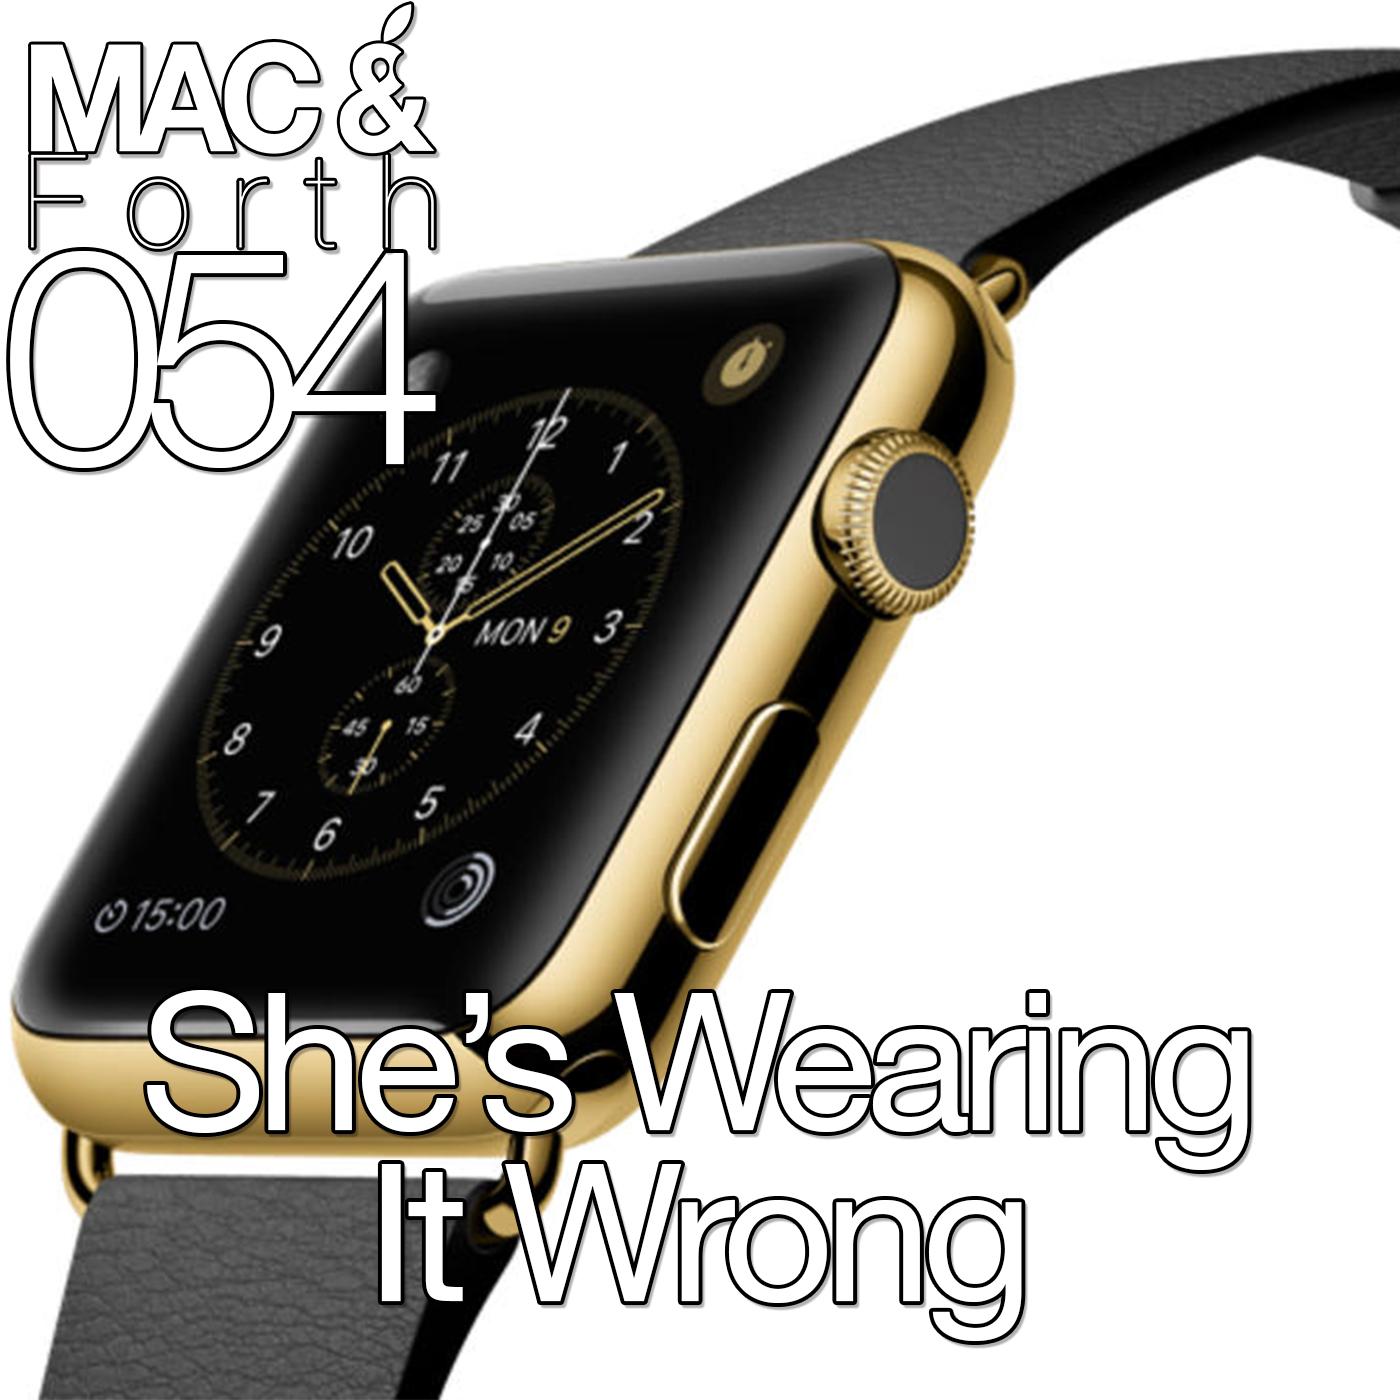 The Mac & Forth Show 054 - She's Wearing It Wrong